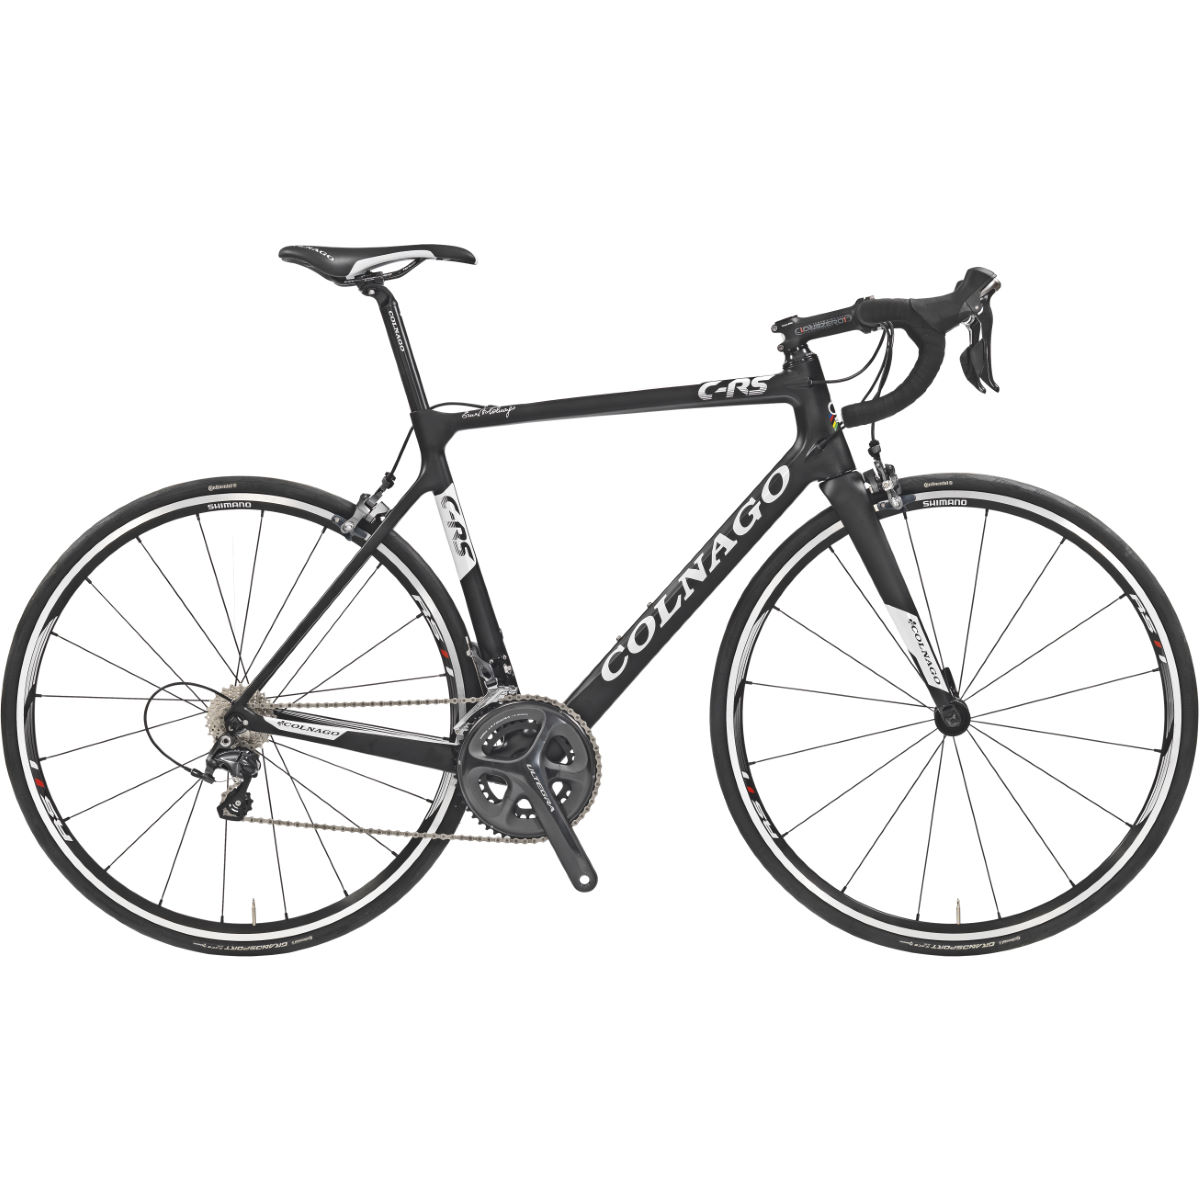 Vélo de route Colnago C-RS Ultegra - 46cm Stock Bike Blanc/Rouge